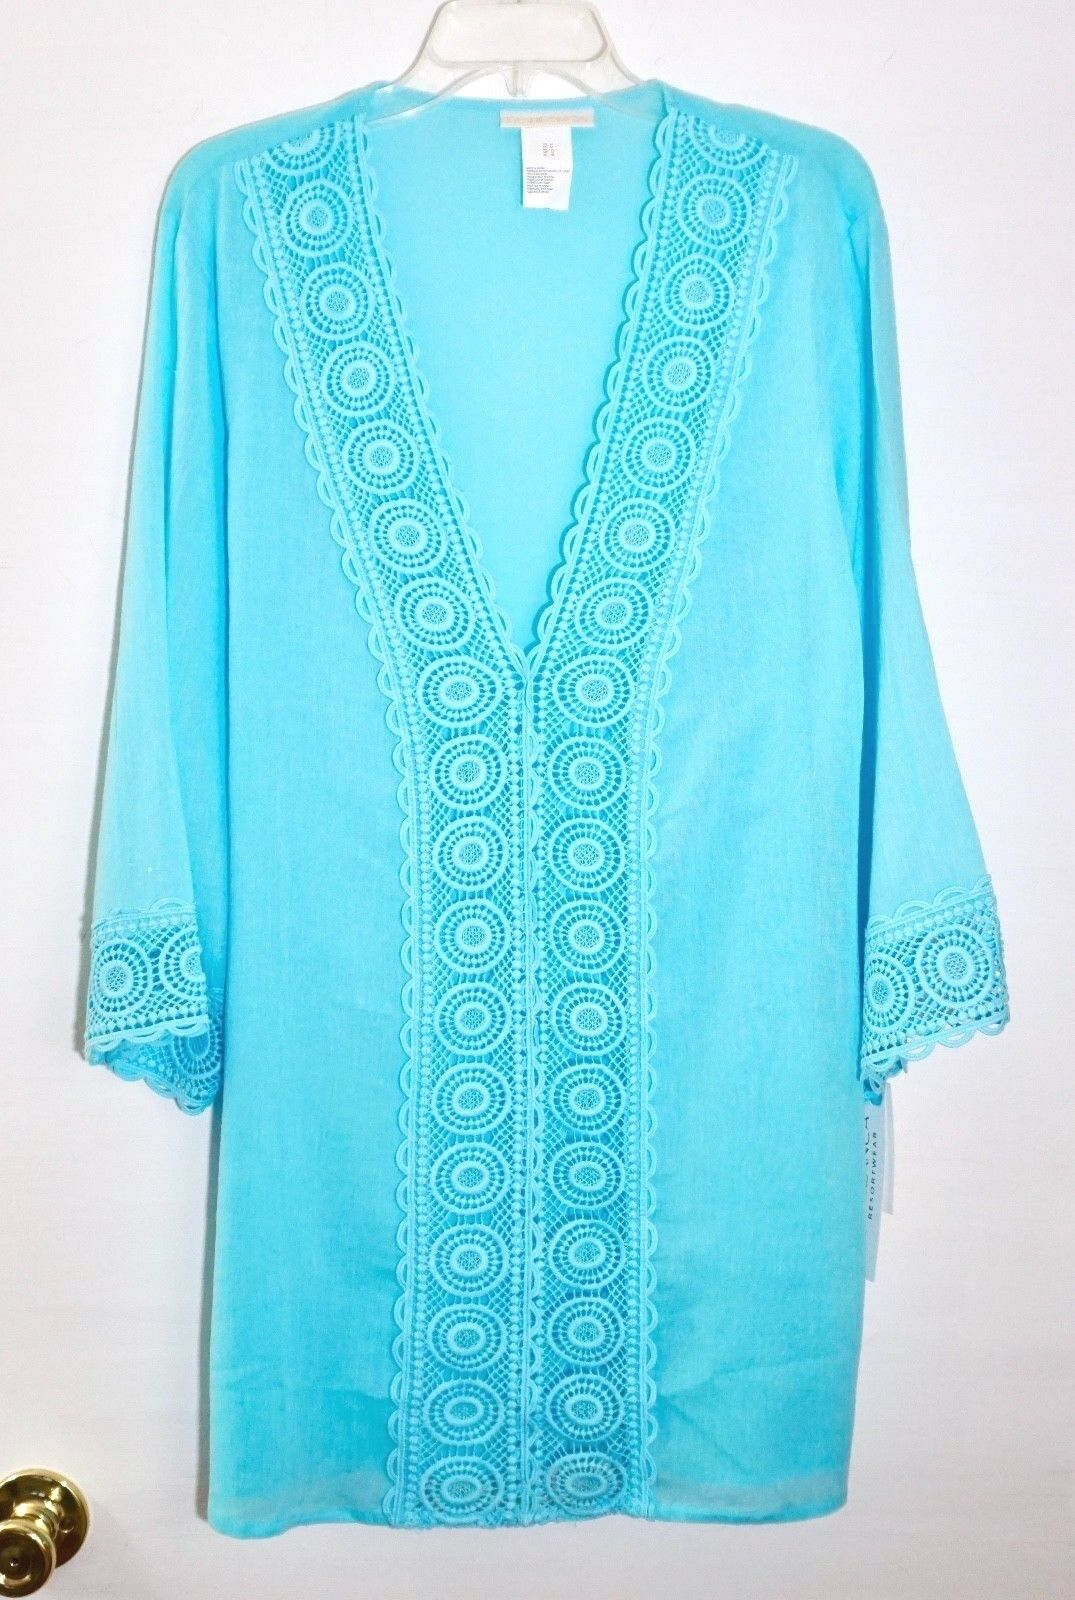 99 La whitea Island Fare Lace Embroidered Inset Tunic Swim Cover Up, Ice bluee